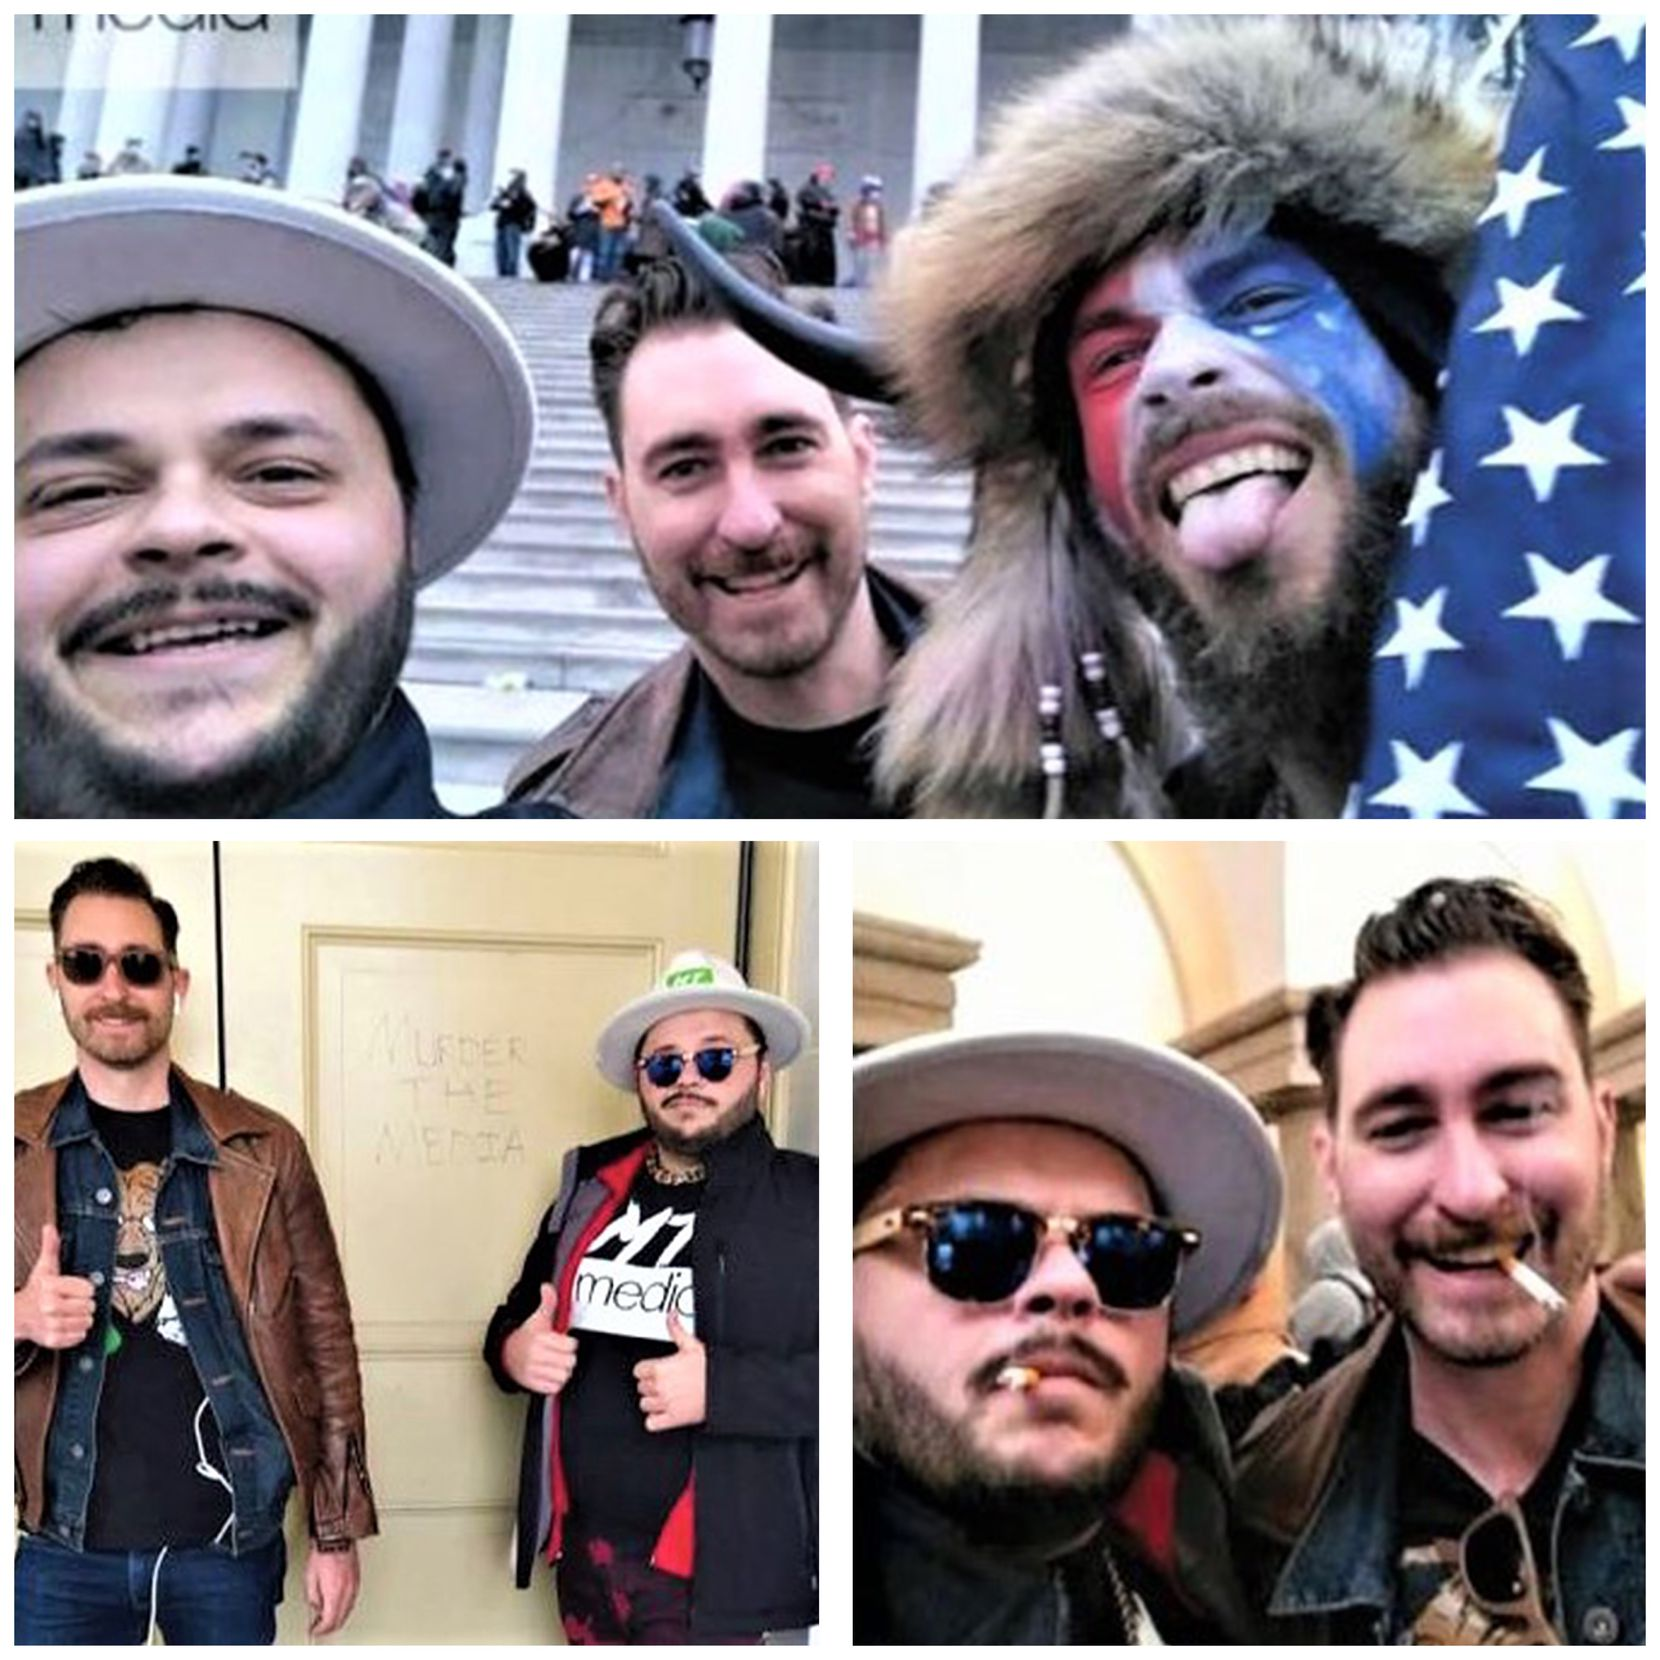 "Top picture: Nicholas DeCarlo (left) and Nicholas Ochs (rear) are seen with Jacob Chansley (right), who was arrested Jan. 9 on charges related to his part in the U.S. Capitol building invasion. Bottom left picture: Nicholas Ochs (left) and Nicholas DeCarlo are shown Jan. 6 in front of a door inside the U.S. Capitol on which the words ""Murder the media"" have been etched.  DeCarlo is seen wearing a ""Murder the media"" shirt. Bottom right picture: According to federal court documents, Nicholas Ochs (right) on the afternoon of Jan. 6 posted this photograph showing him and Nicholas DeCarlo both smoking inside the Capitol."